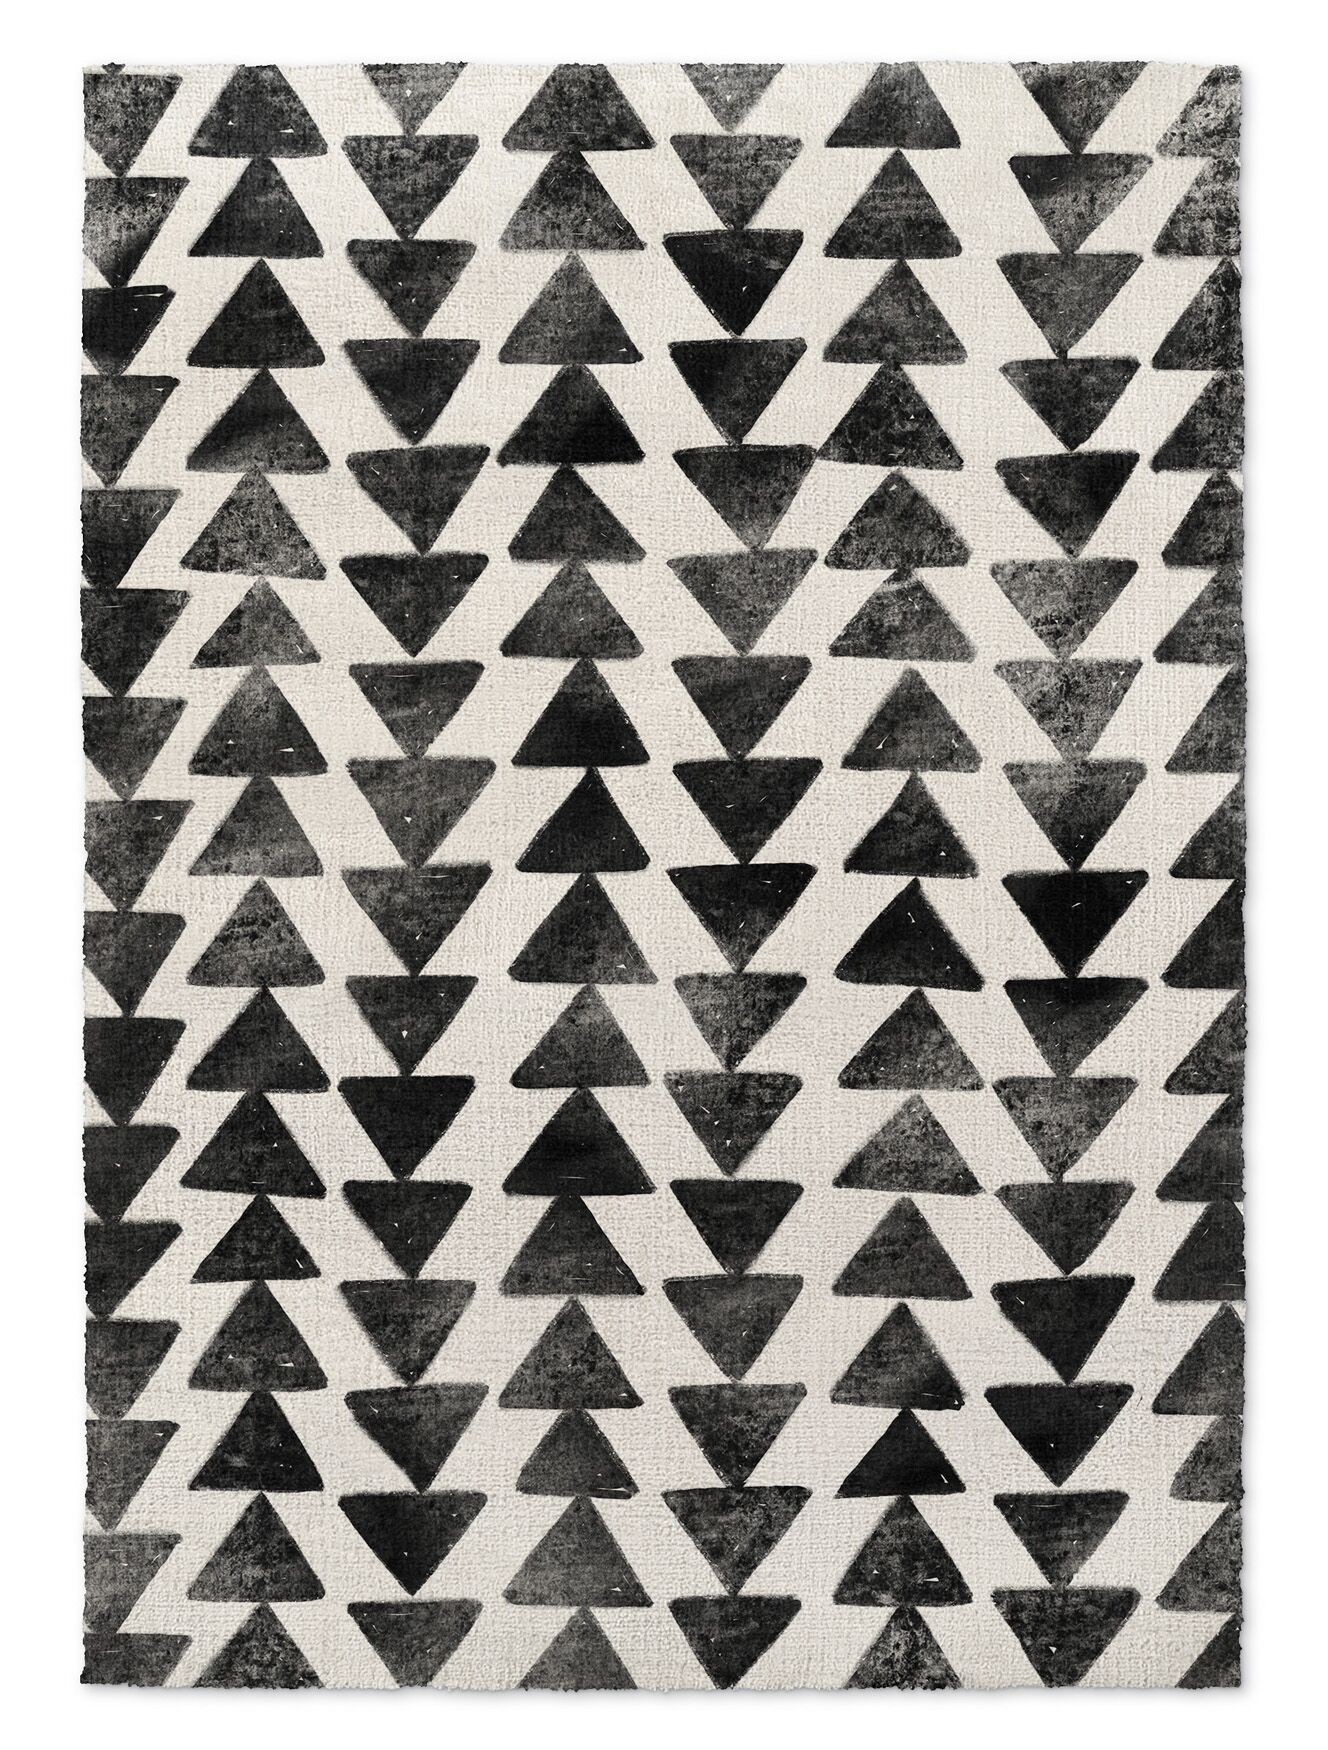 Foulks Black/Ivory Area Rug Rug Size: Rectangle 5' X 7'